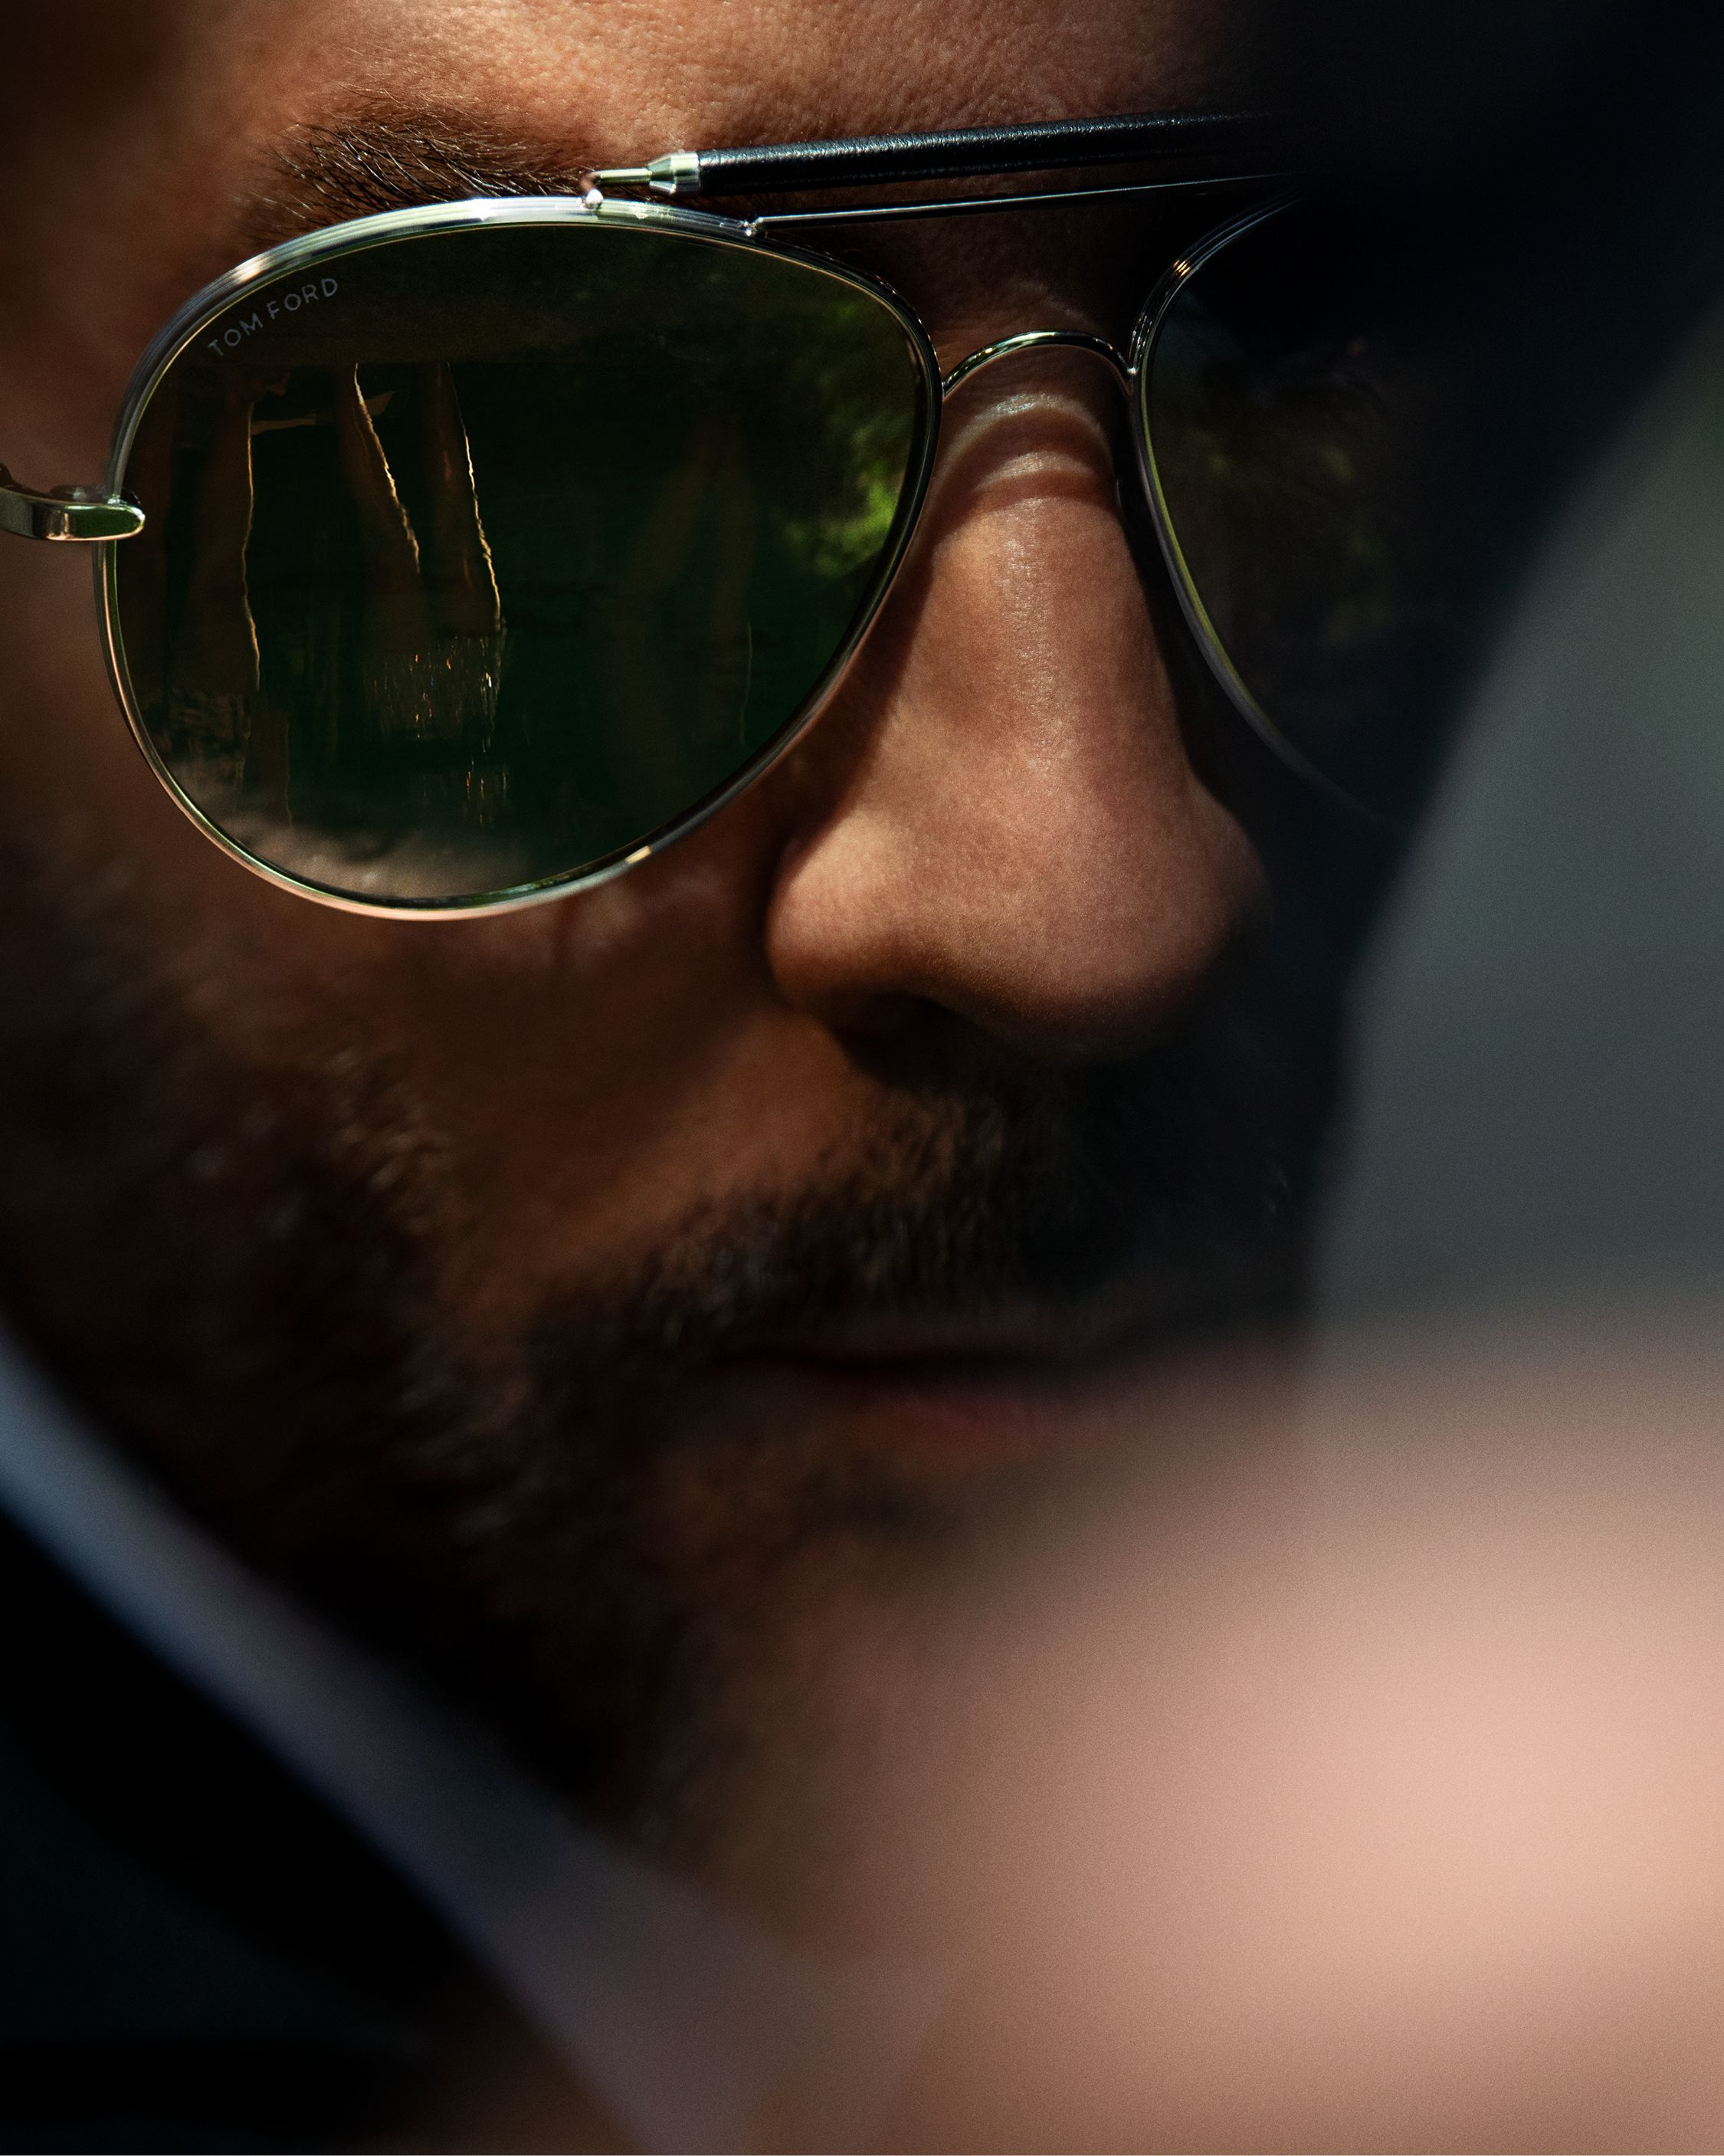 Discover the exclusive TOM FORD Private Collection featuring 3 new styles  of Sunglasses and Optical Frames.  TOMFORD  TFPRIVATECOLLECTION c8790729d442